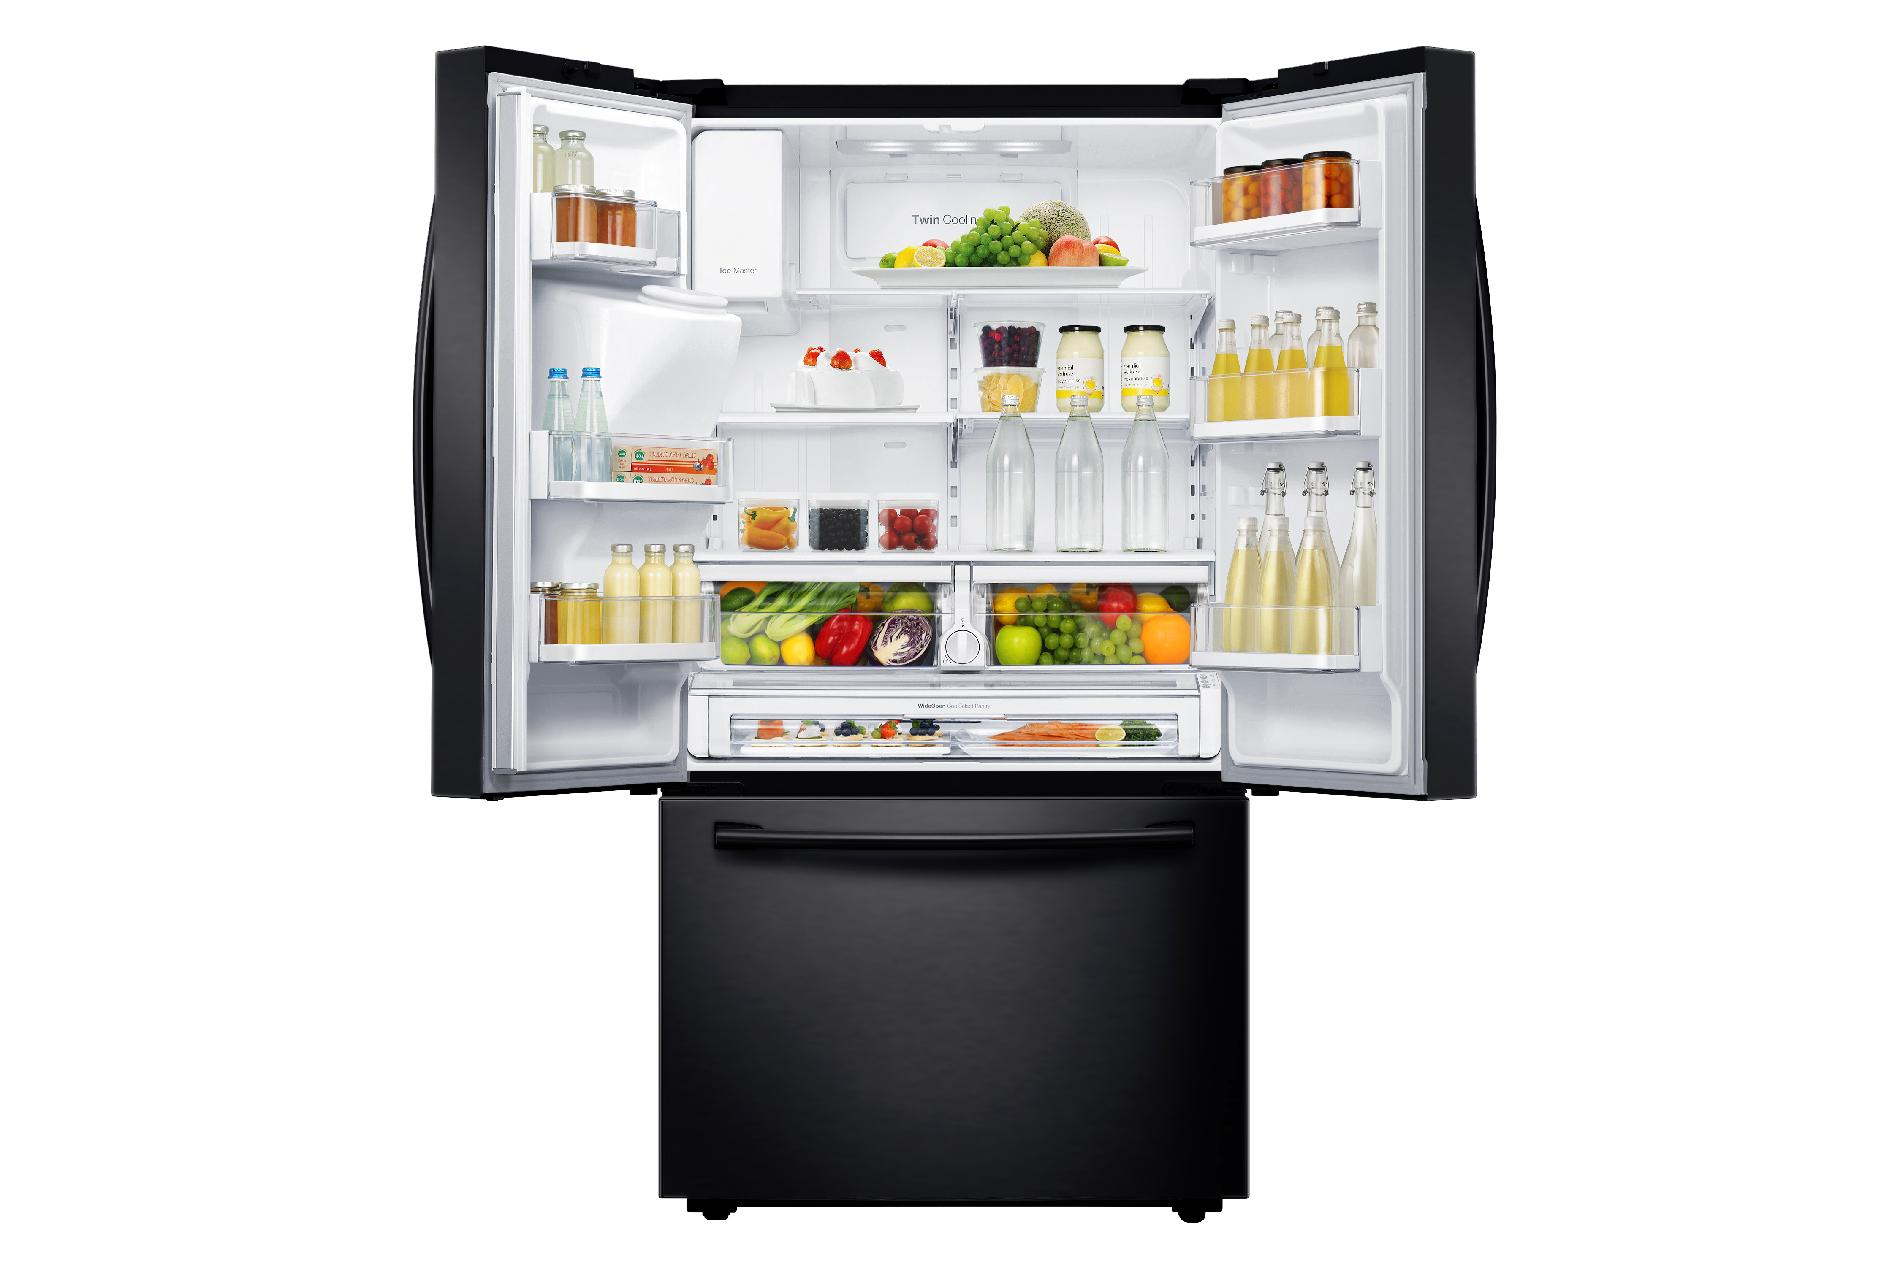 Samsung 22.5 cu. ft. Counter-Depth French Door Refrigerator - Black